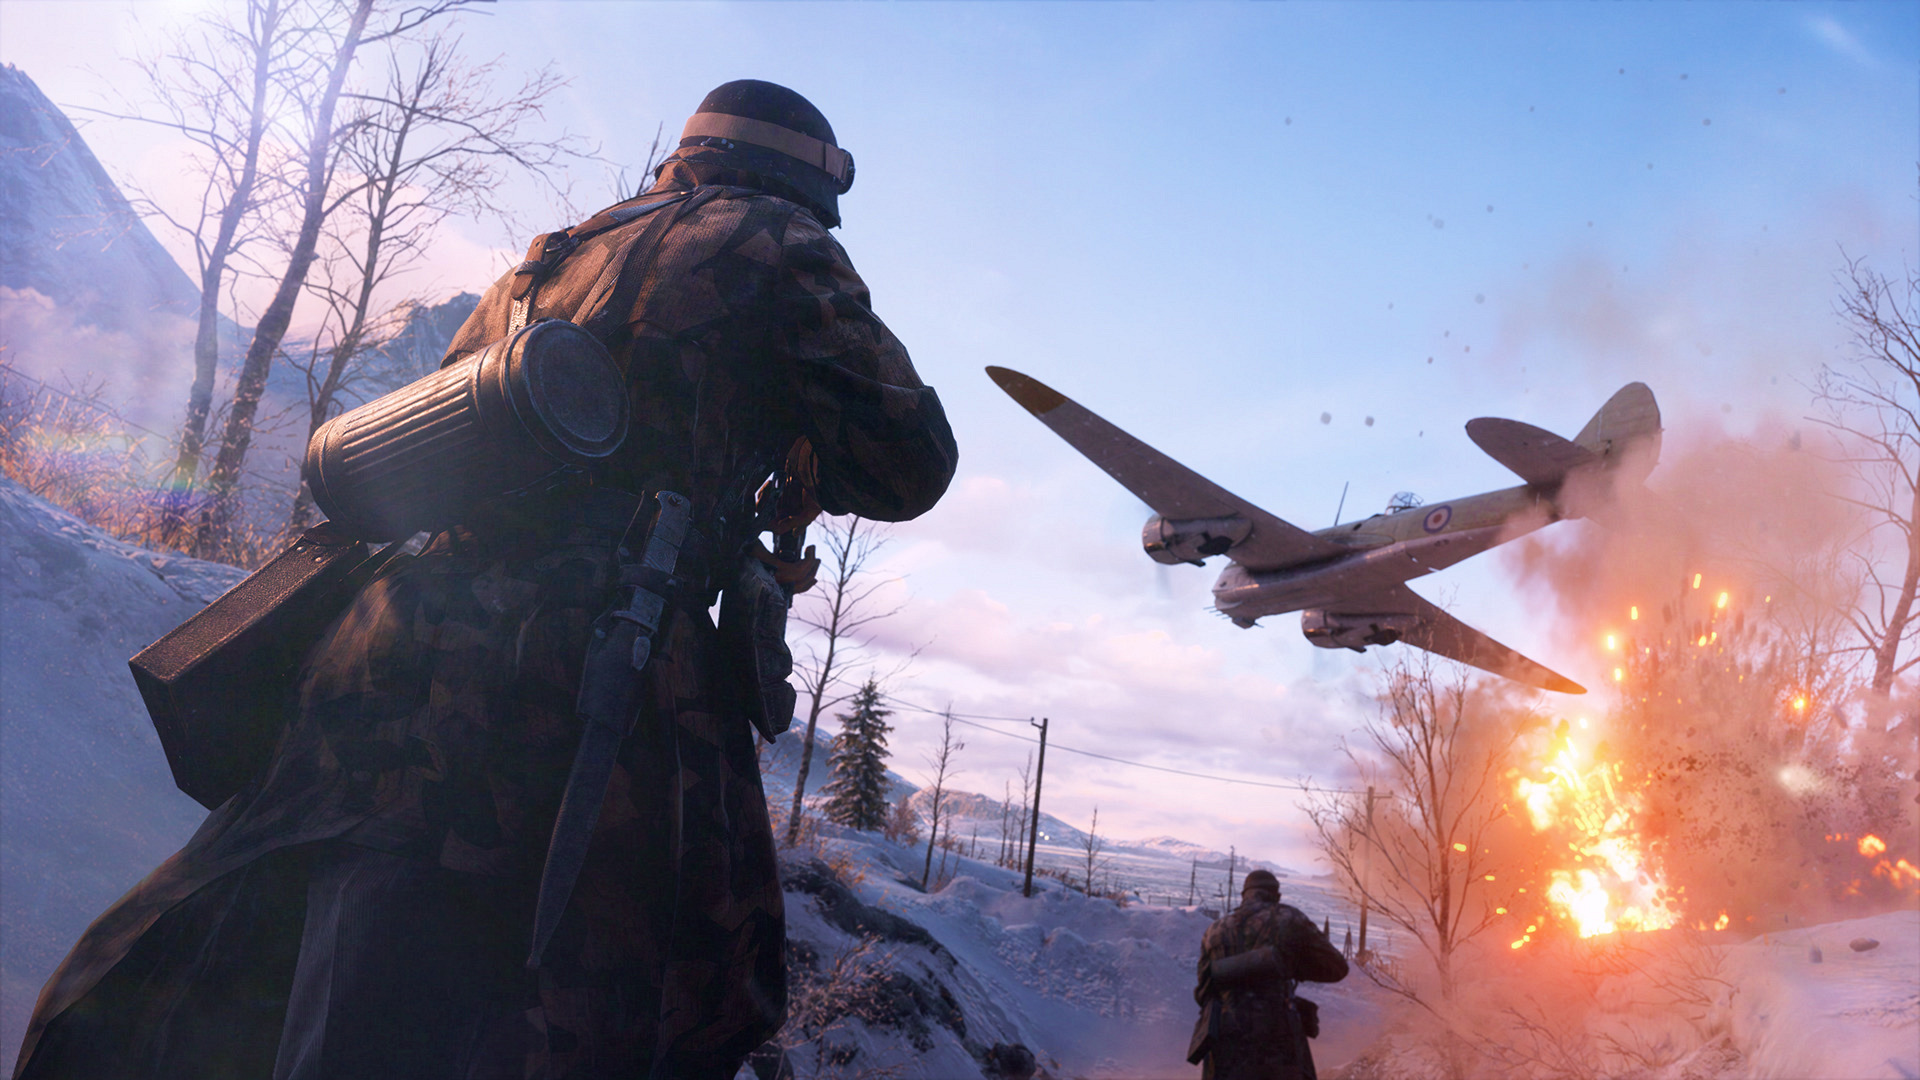 Battlefield 5 battle royale challenges appear in-game, suggesting